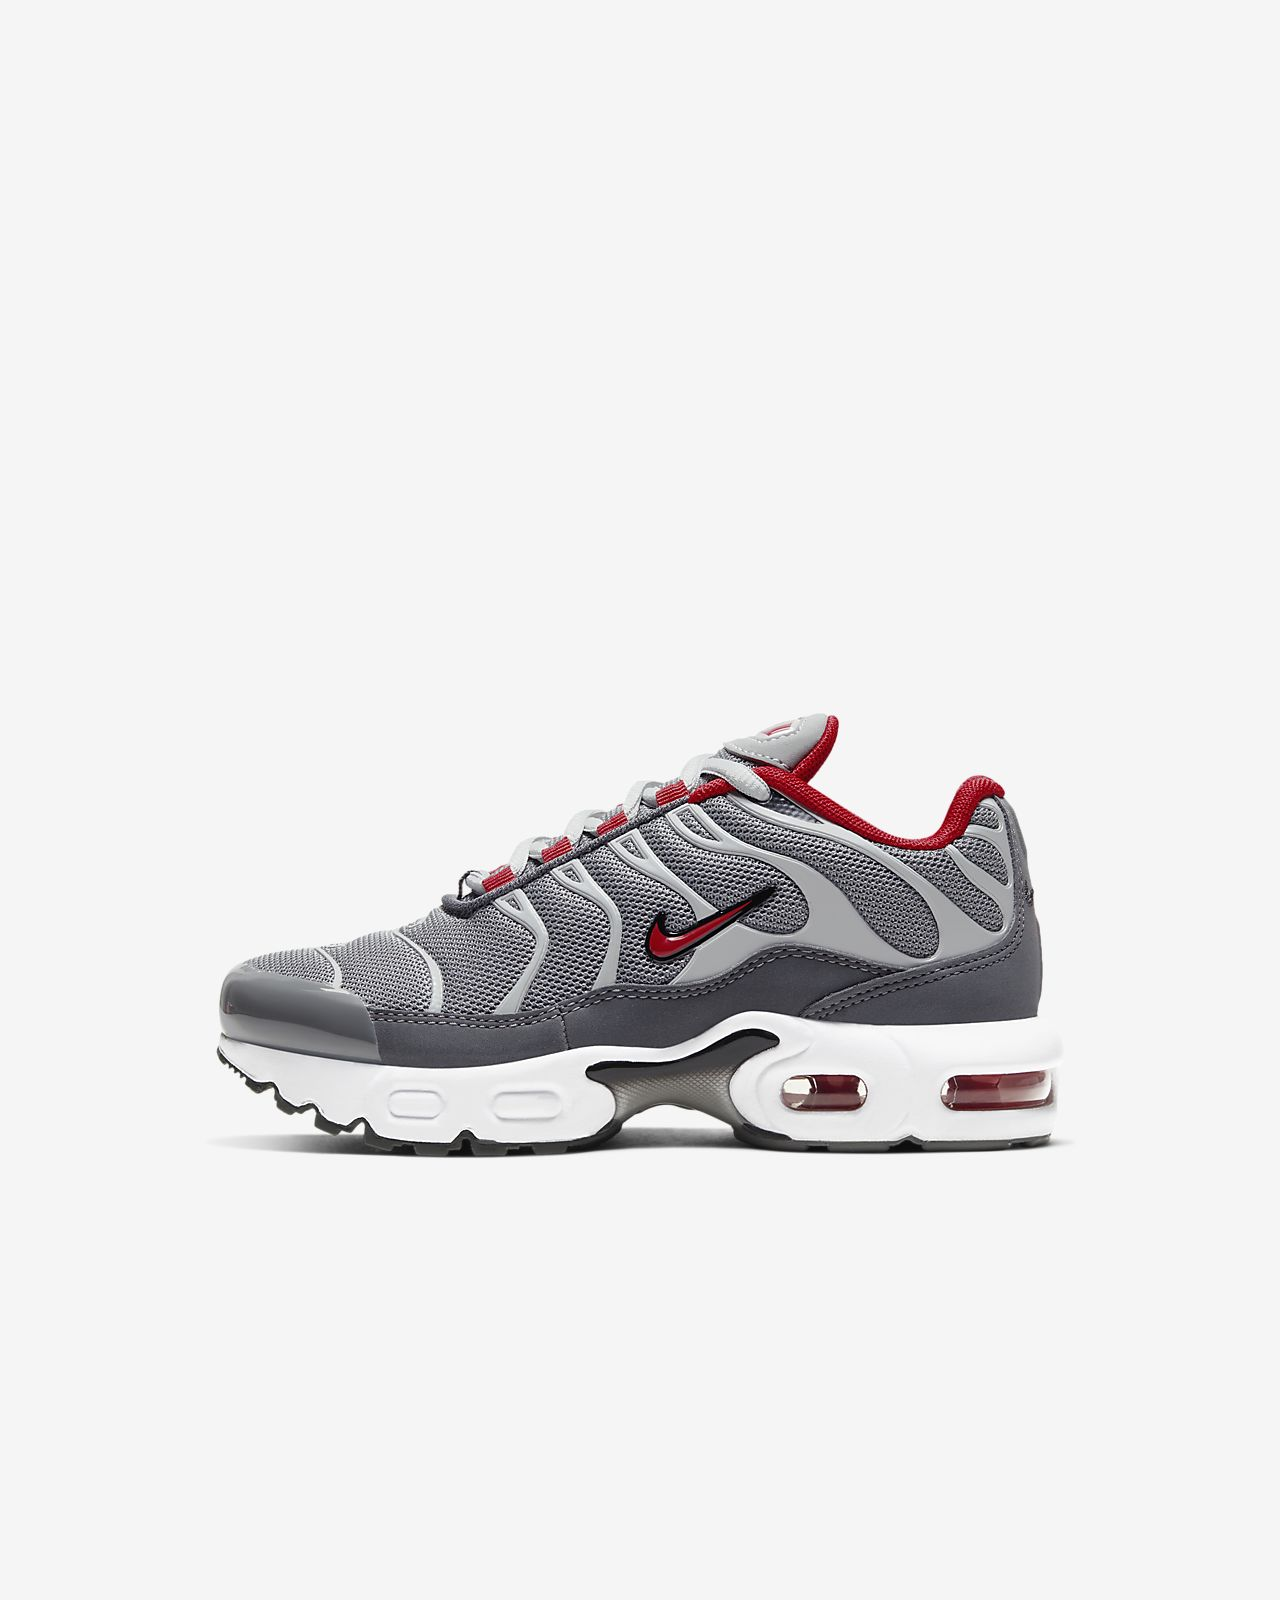 Nike Air Max Plus Little Kids' Shoe